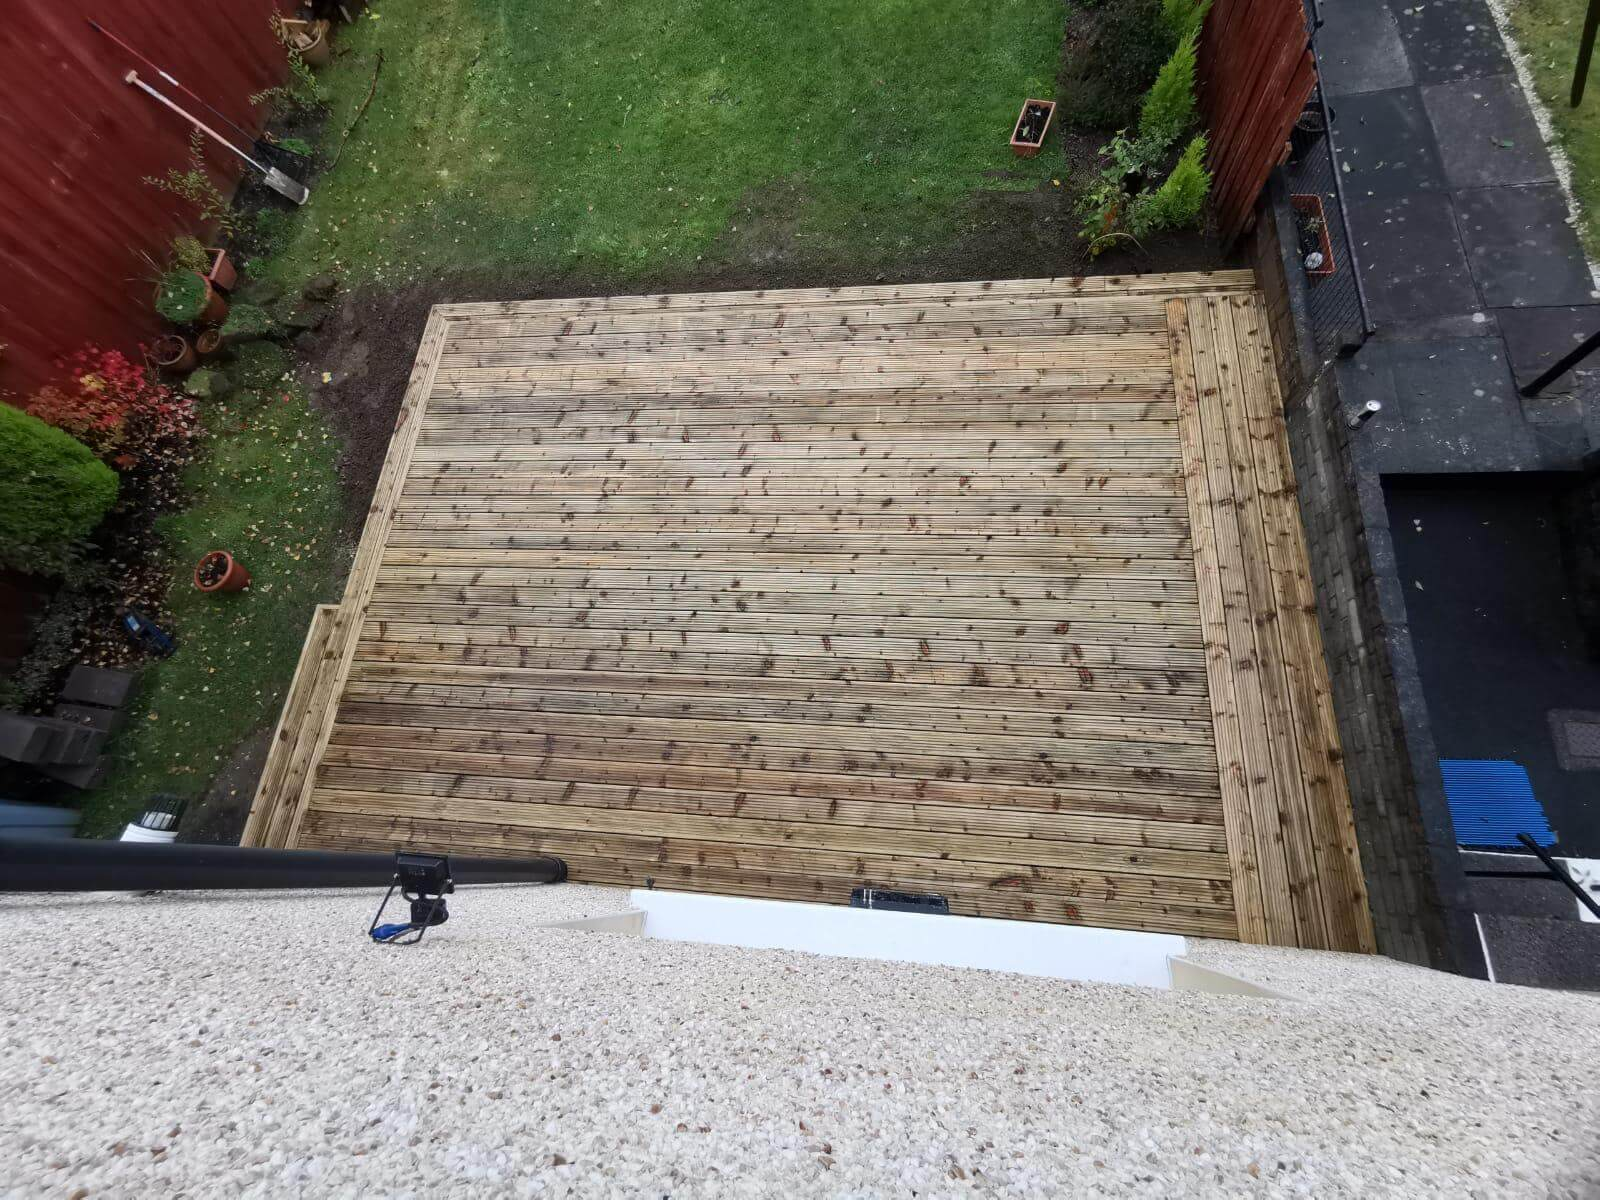 wooden patio oudsite of building, Glasgow